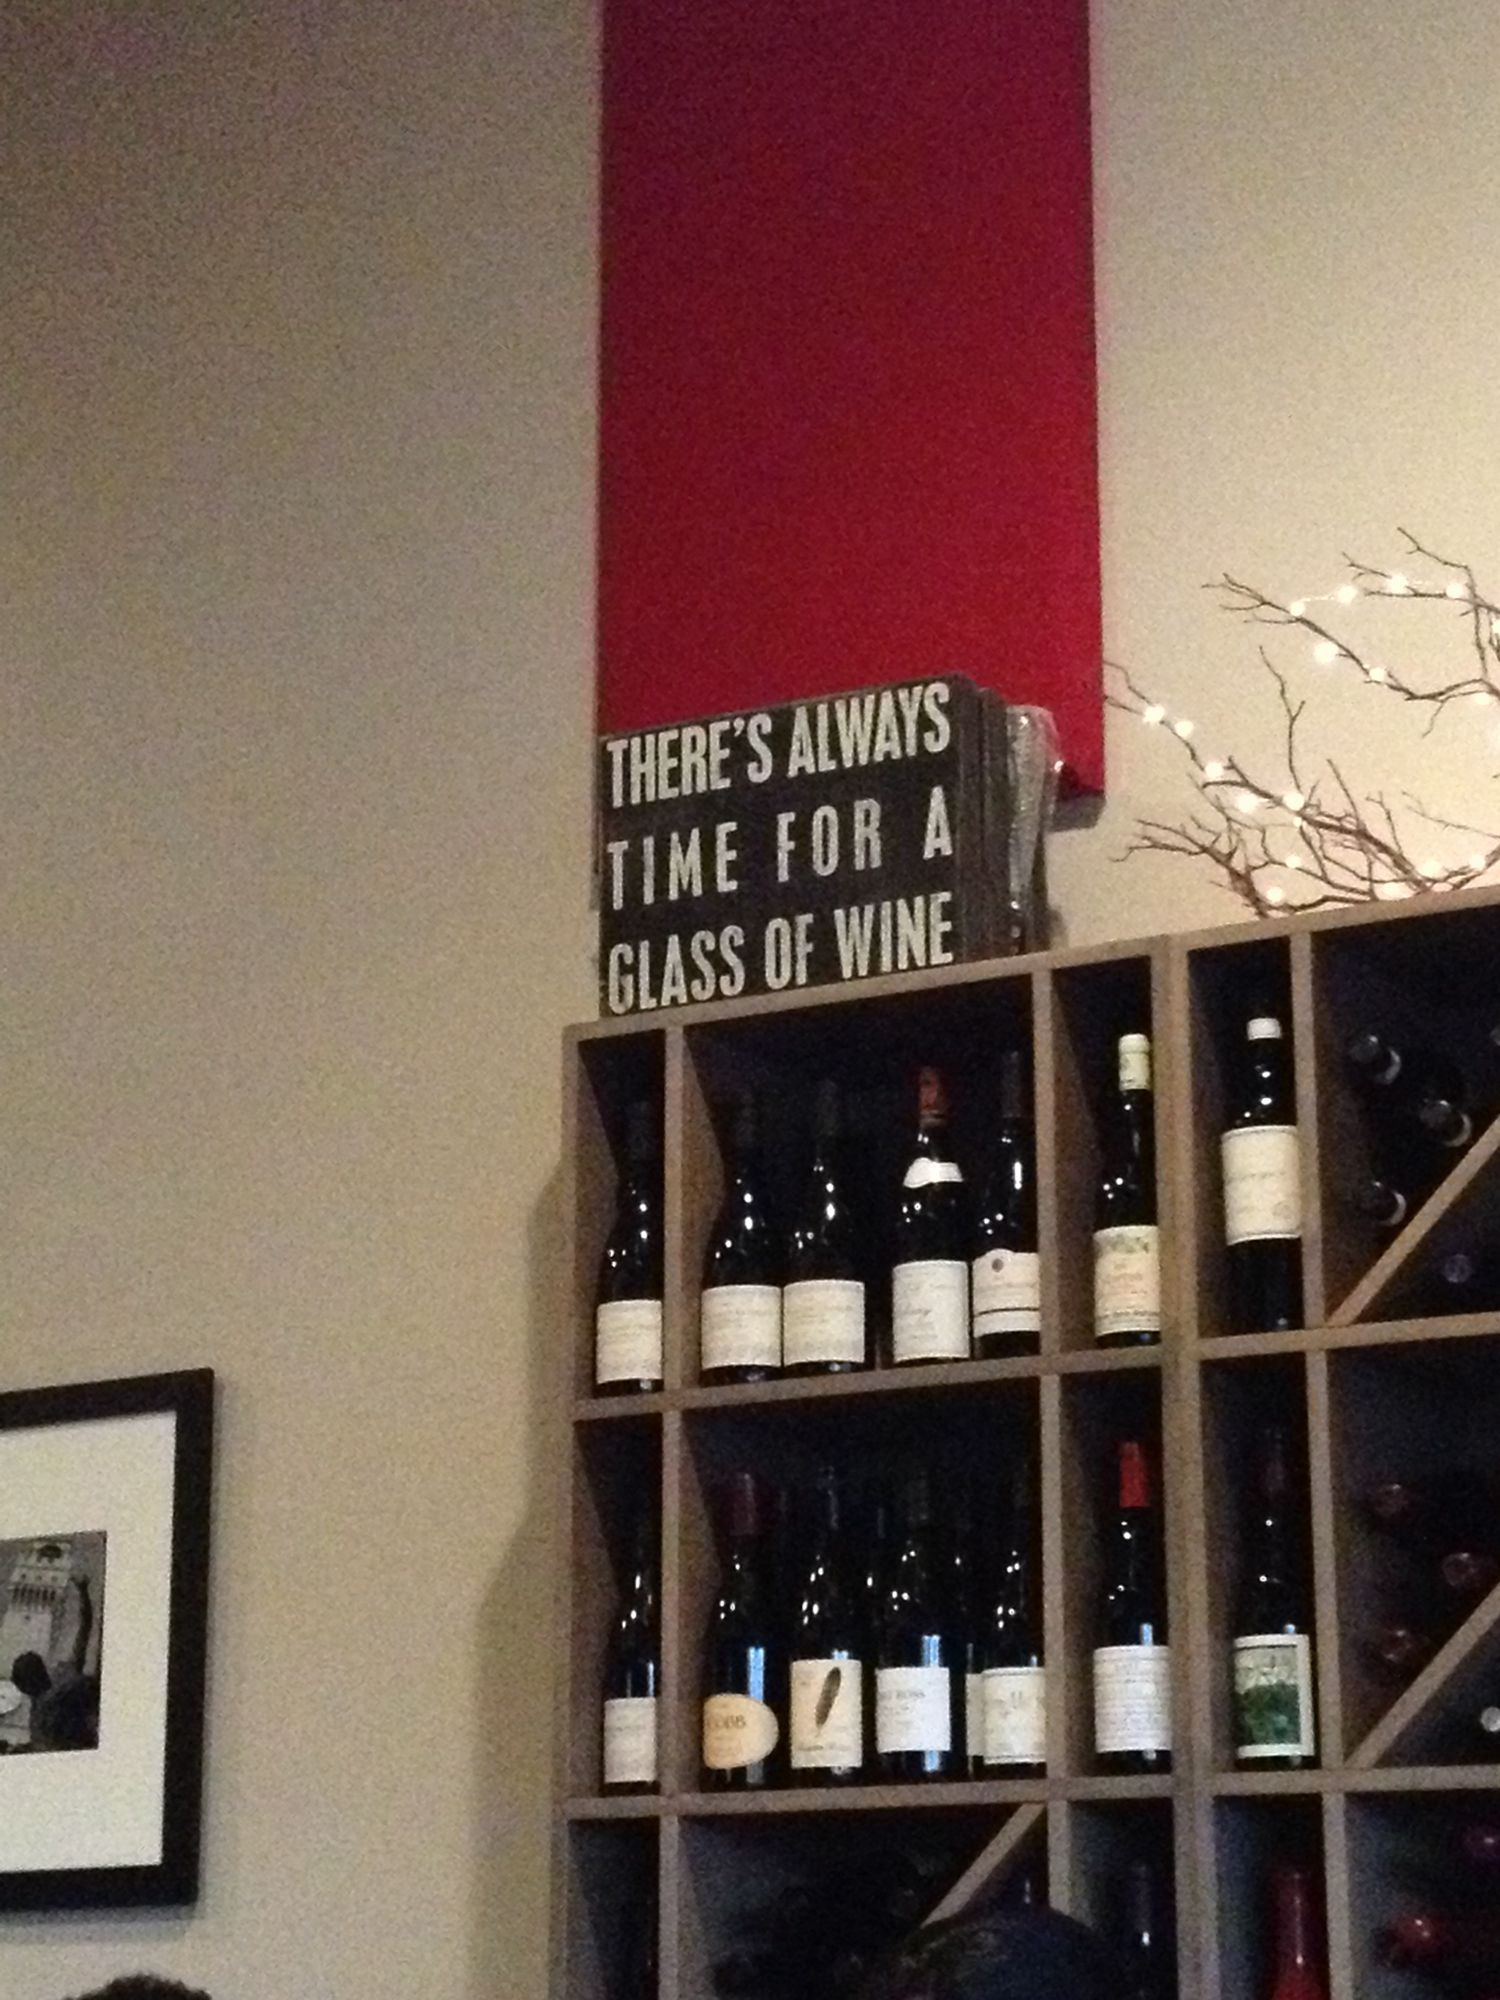 Apt Words At Vine And Vino Located In The Kensington Neighborhood Of San Diego I Dropped In Last Night And Enjoyed A Nice Glass Of Hunga Glass Wine Glass Vino